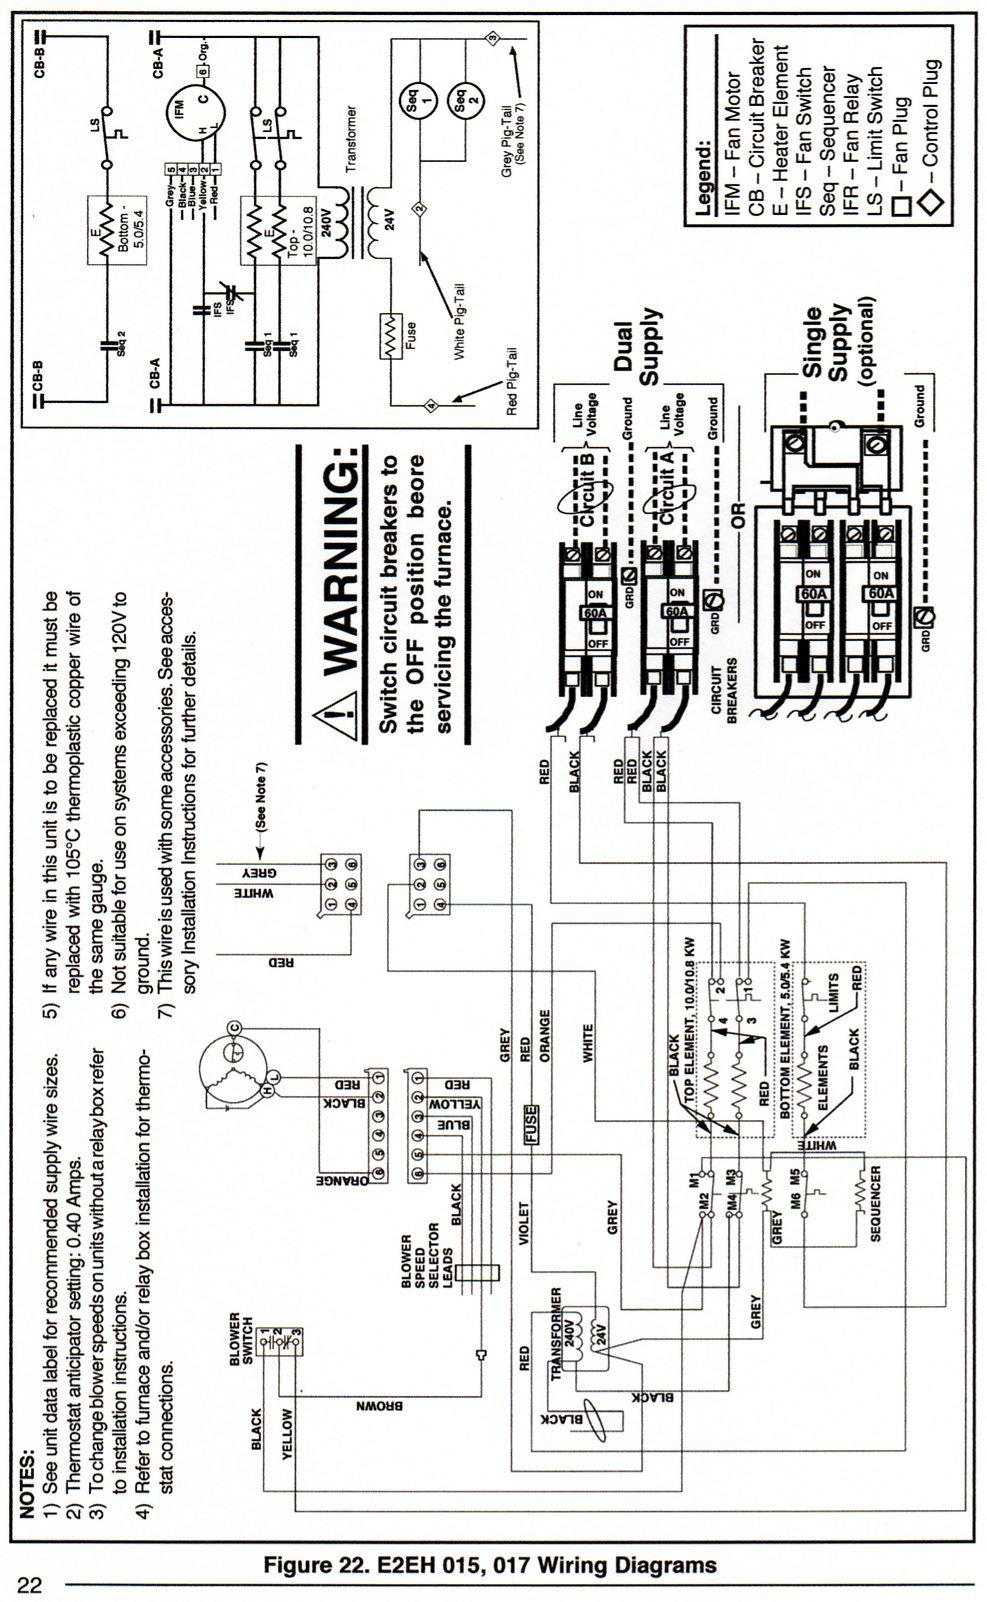 Wiring Diagrams For Nordyne Furnaces Get Free Image